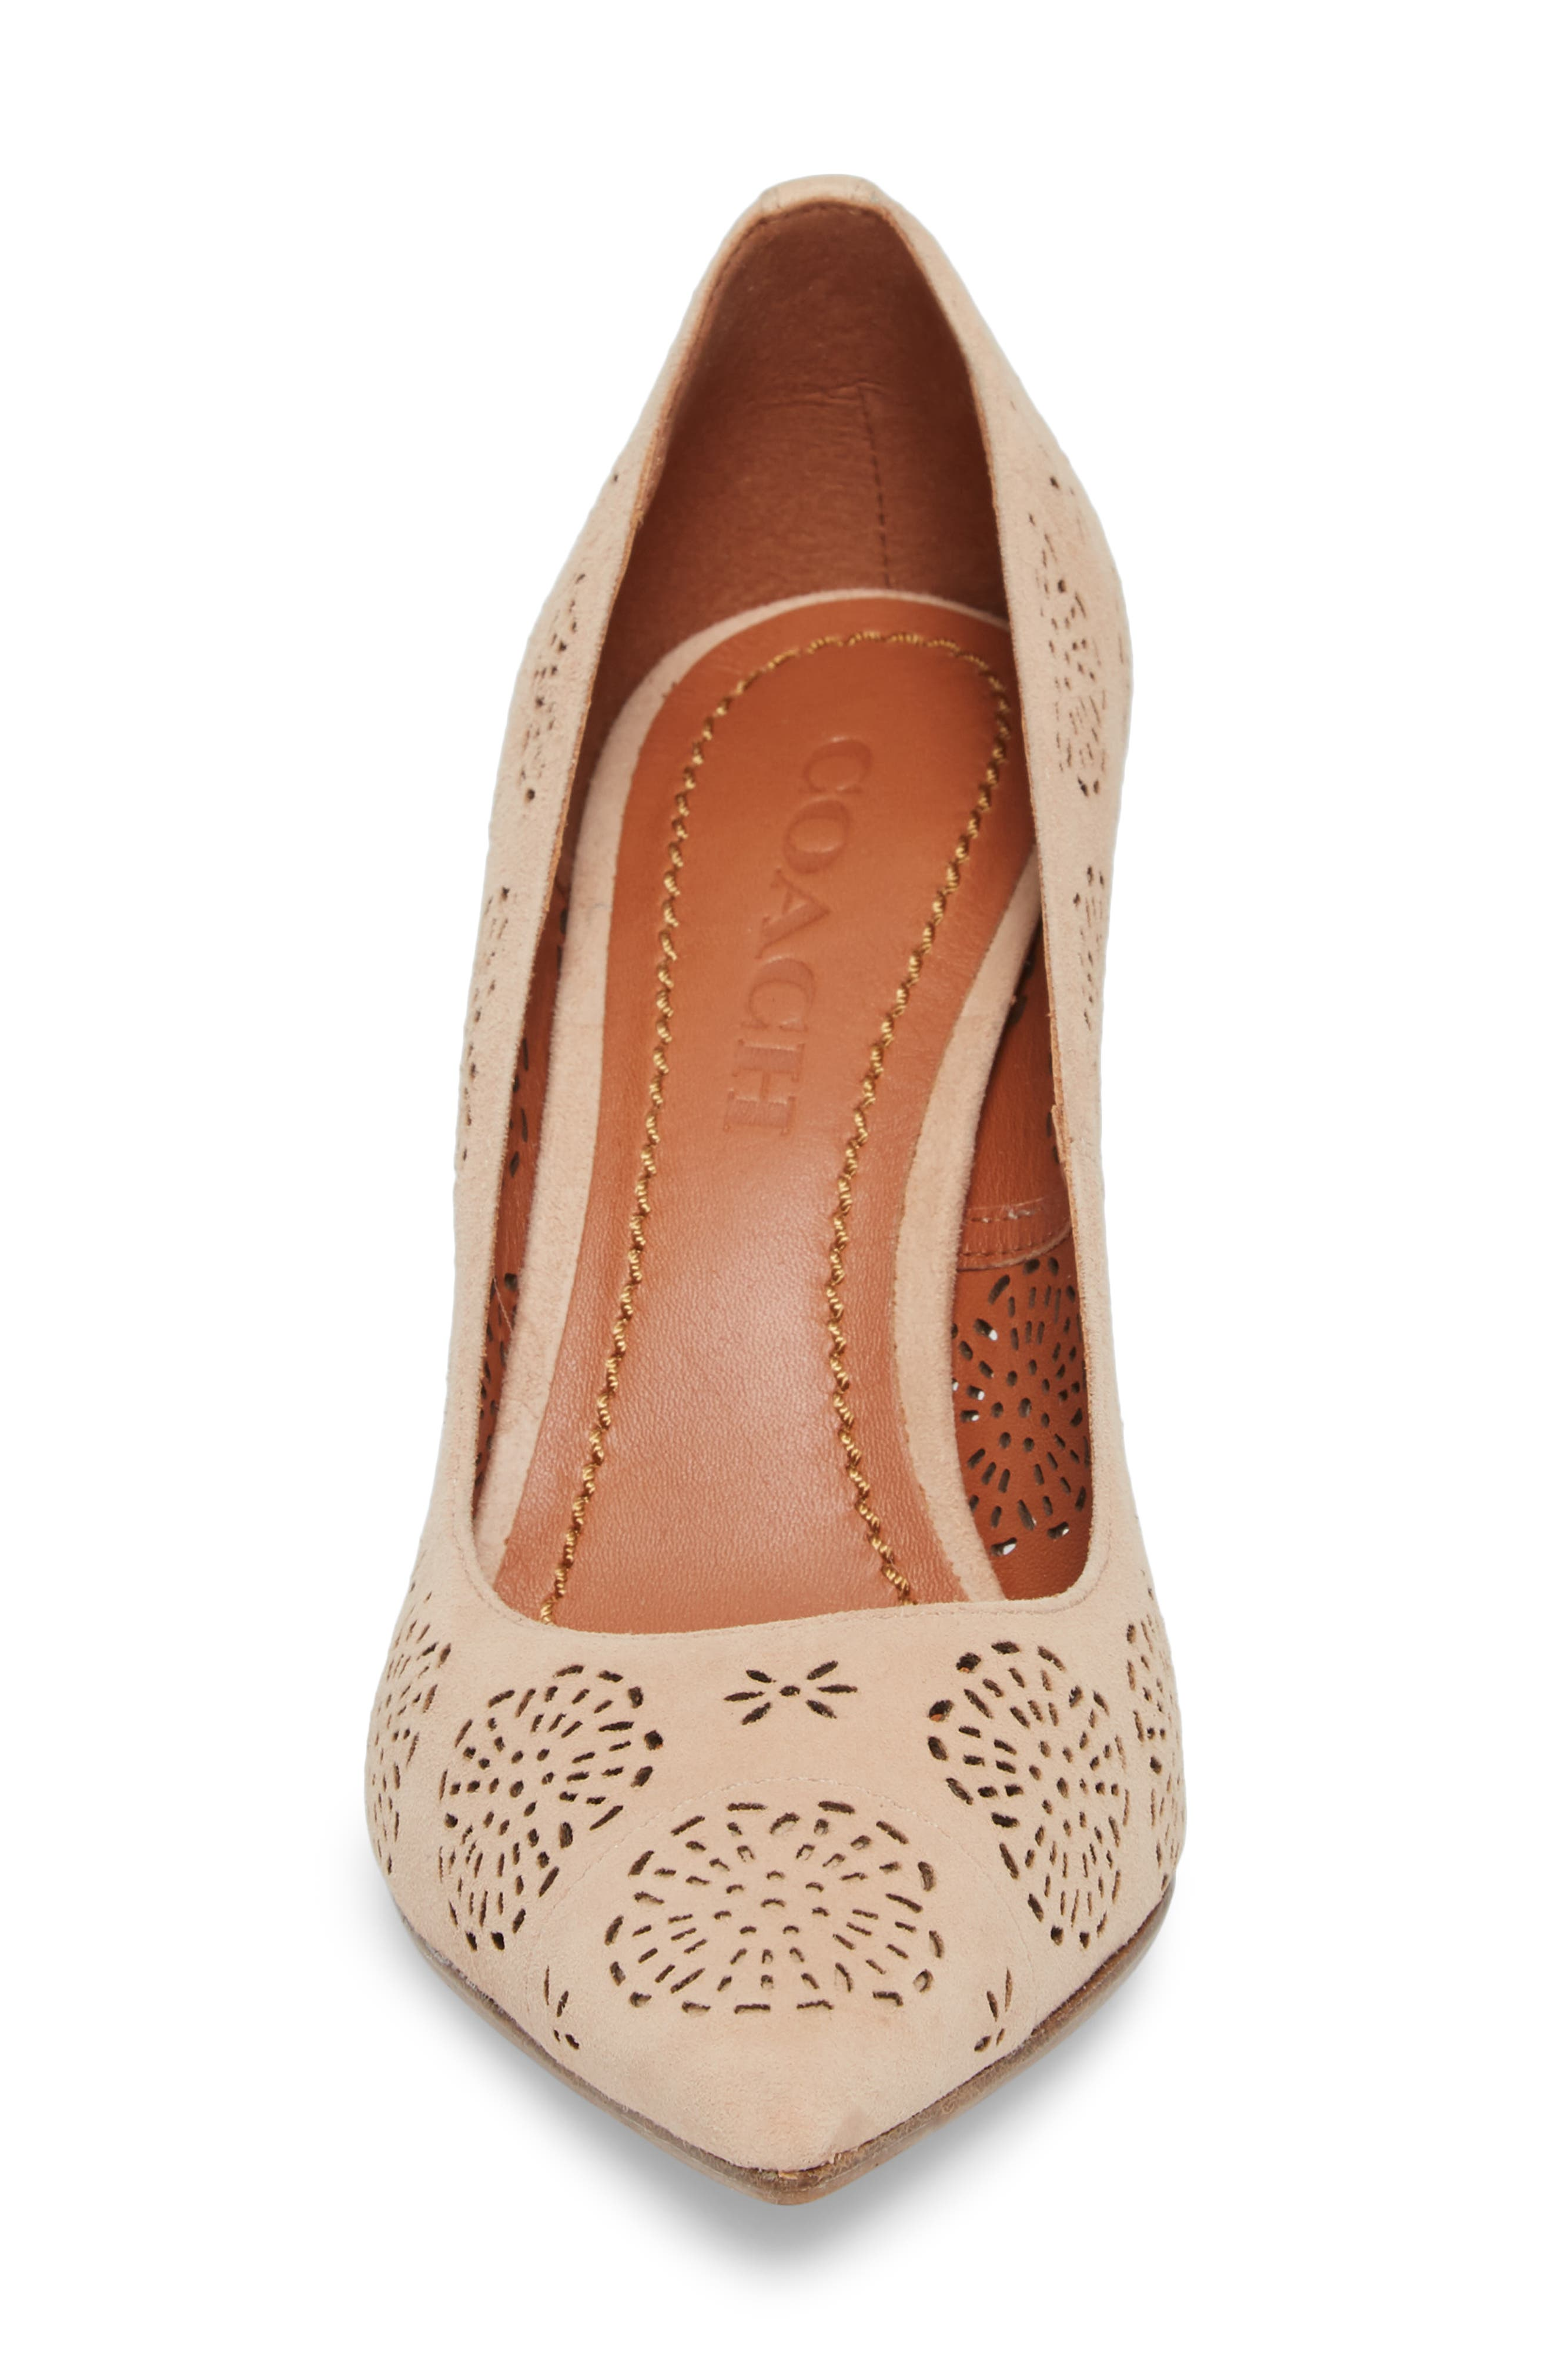 Waverly Tea Rose Perforated Pump,                             Alternate thumbnail 4, color,                             Beachwood Leather